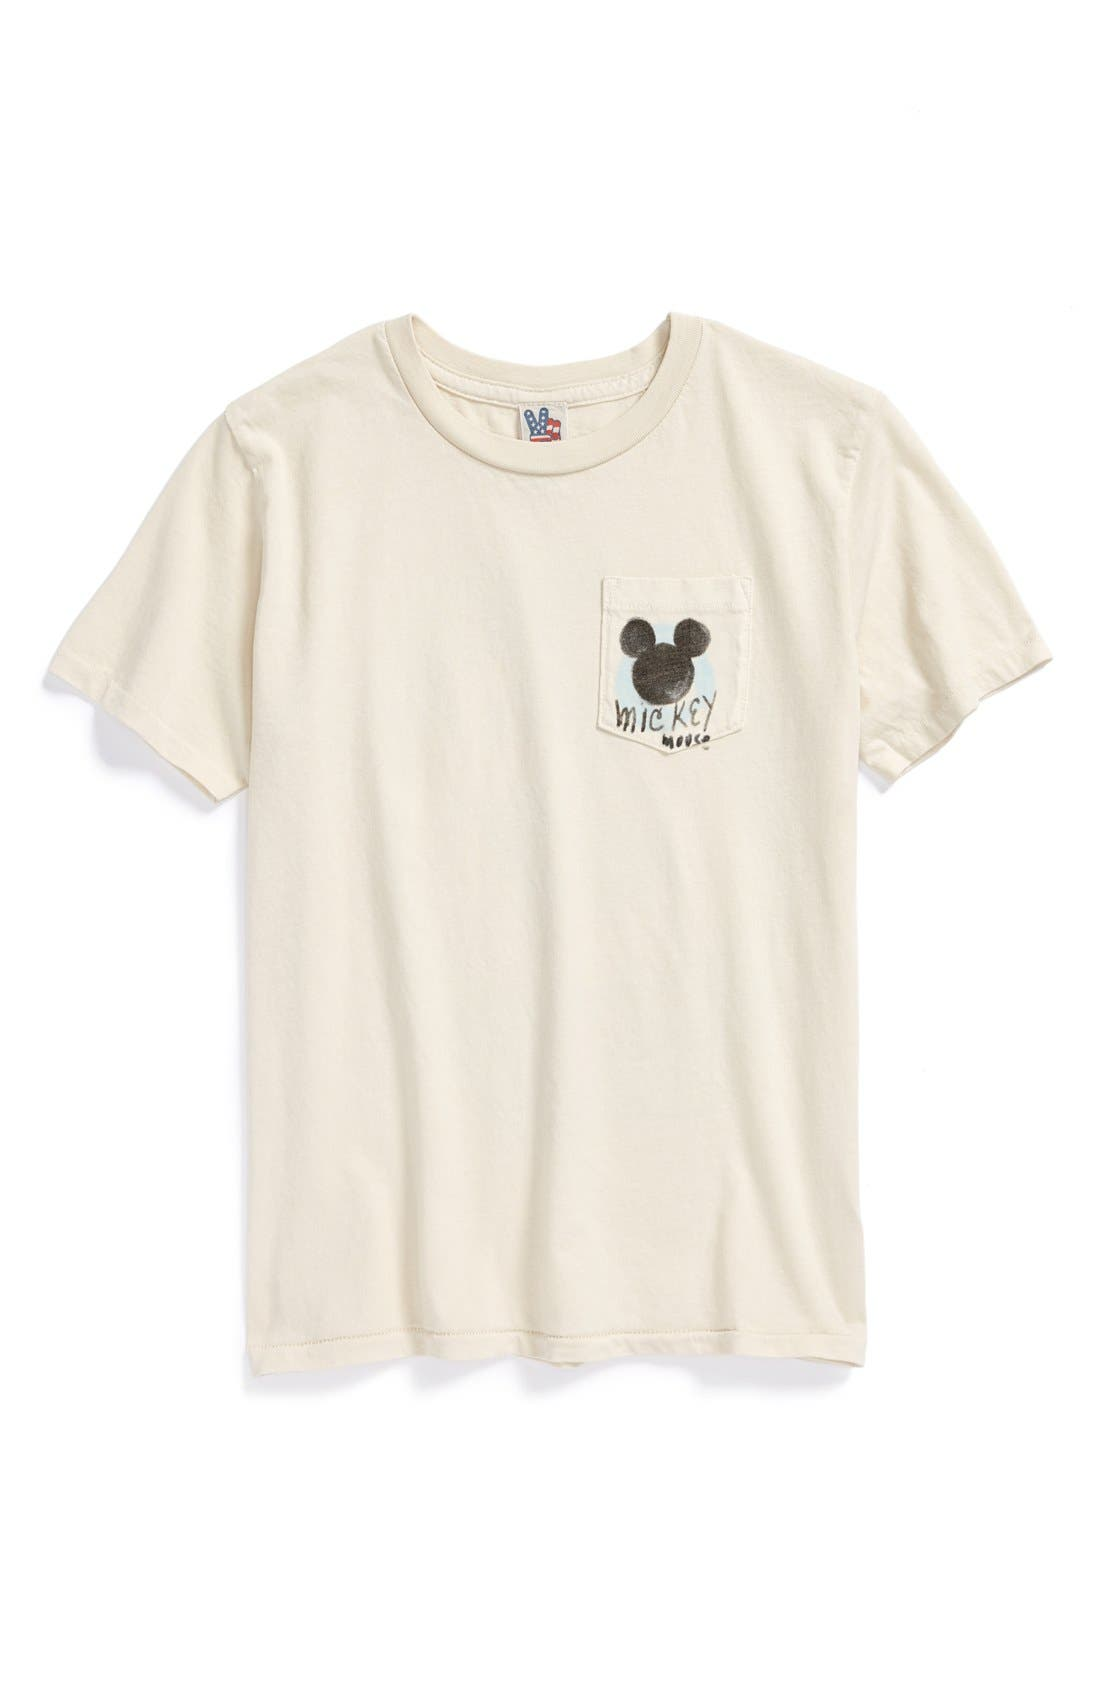 Alternate Image 1 Selected - Junk Food 'Mickey Mouse™' T-Shirt (Toddler Boys)